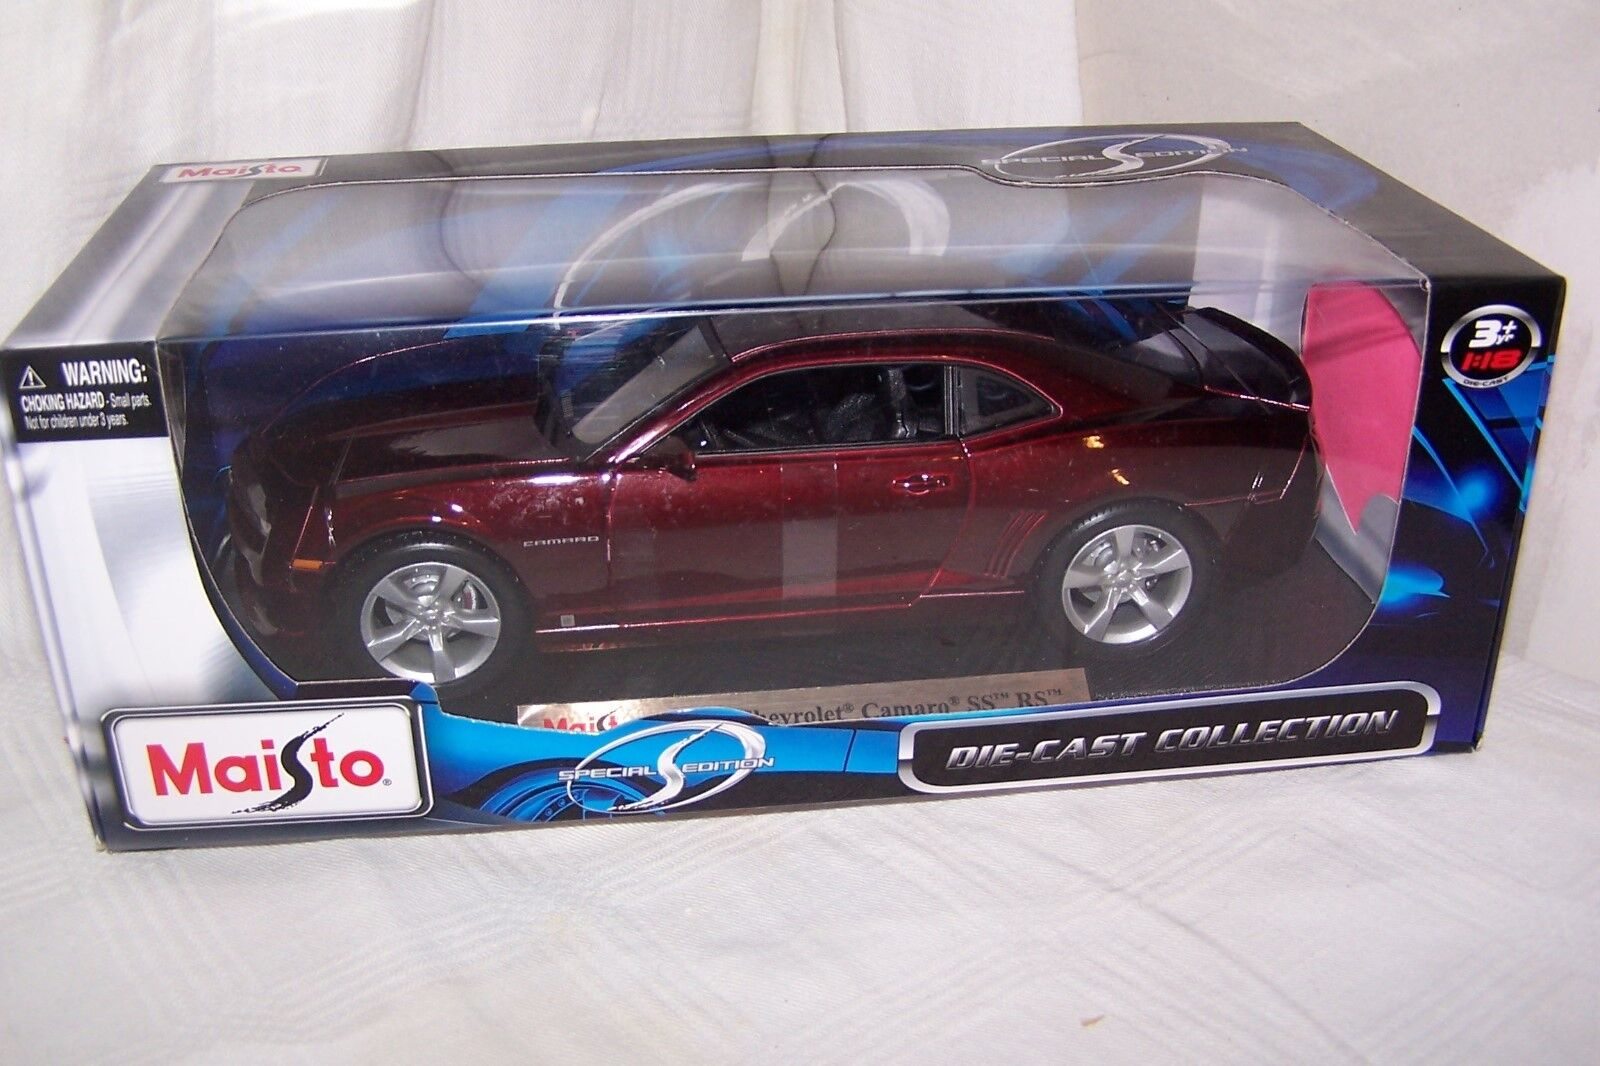 Diecast 1 18 2010 Chevrolet Camaro SS RS